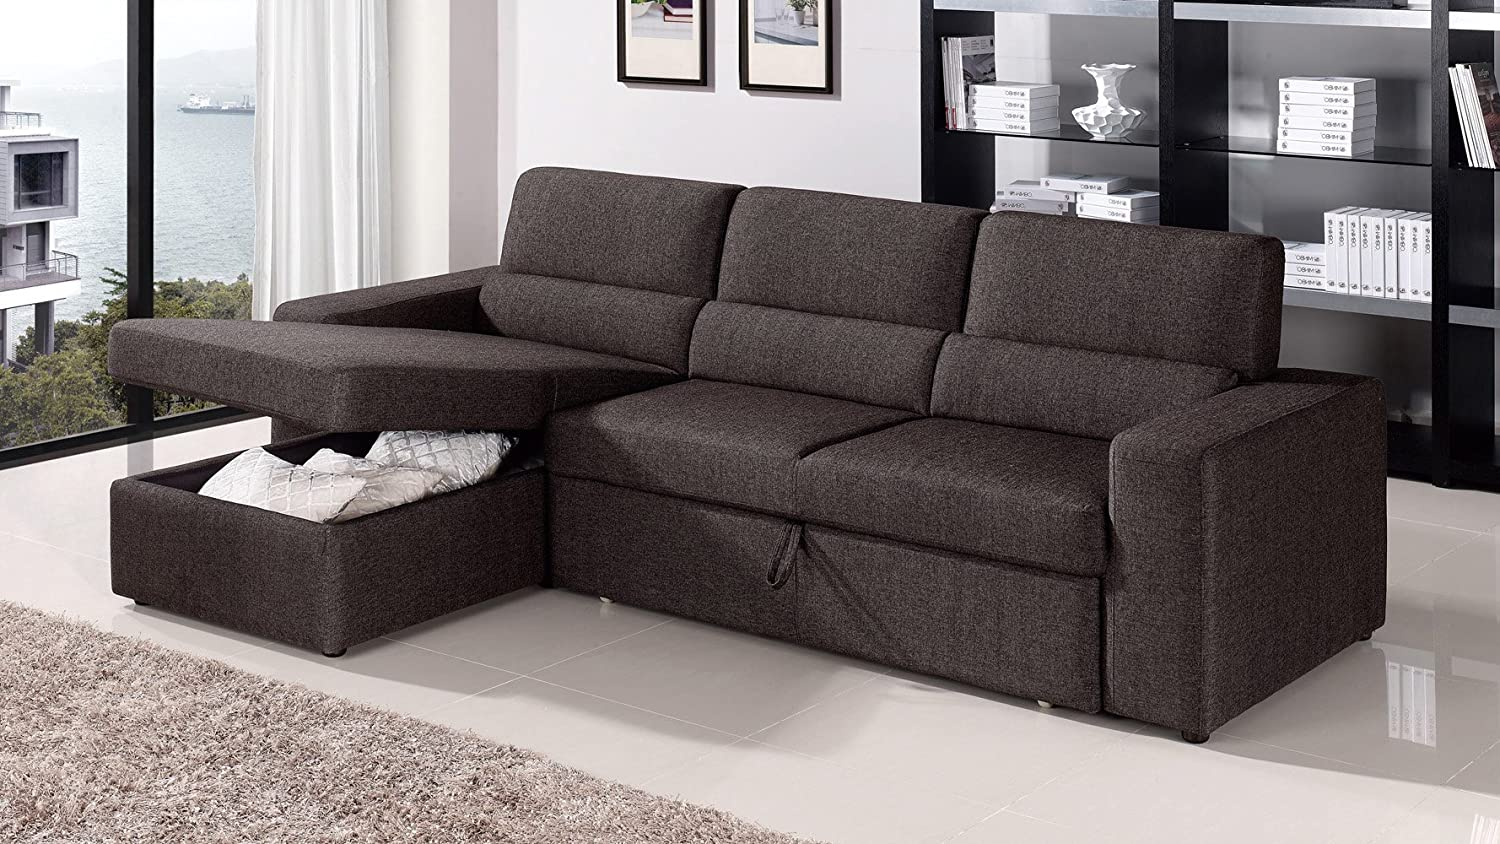 Amazon.com Black/Brown Clubber Sleeper Sectional Sofa - Right Chaise Kitchen u0026 Dining : sleeper sofas with chaise - Sectionals, Sofas & Couches